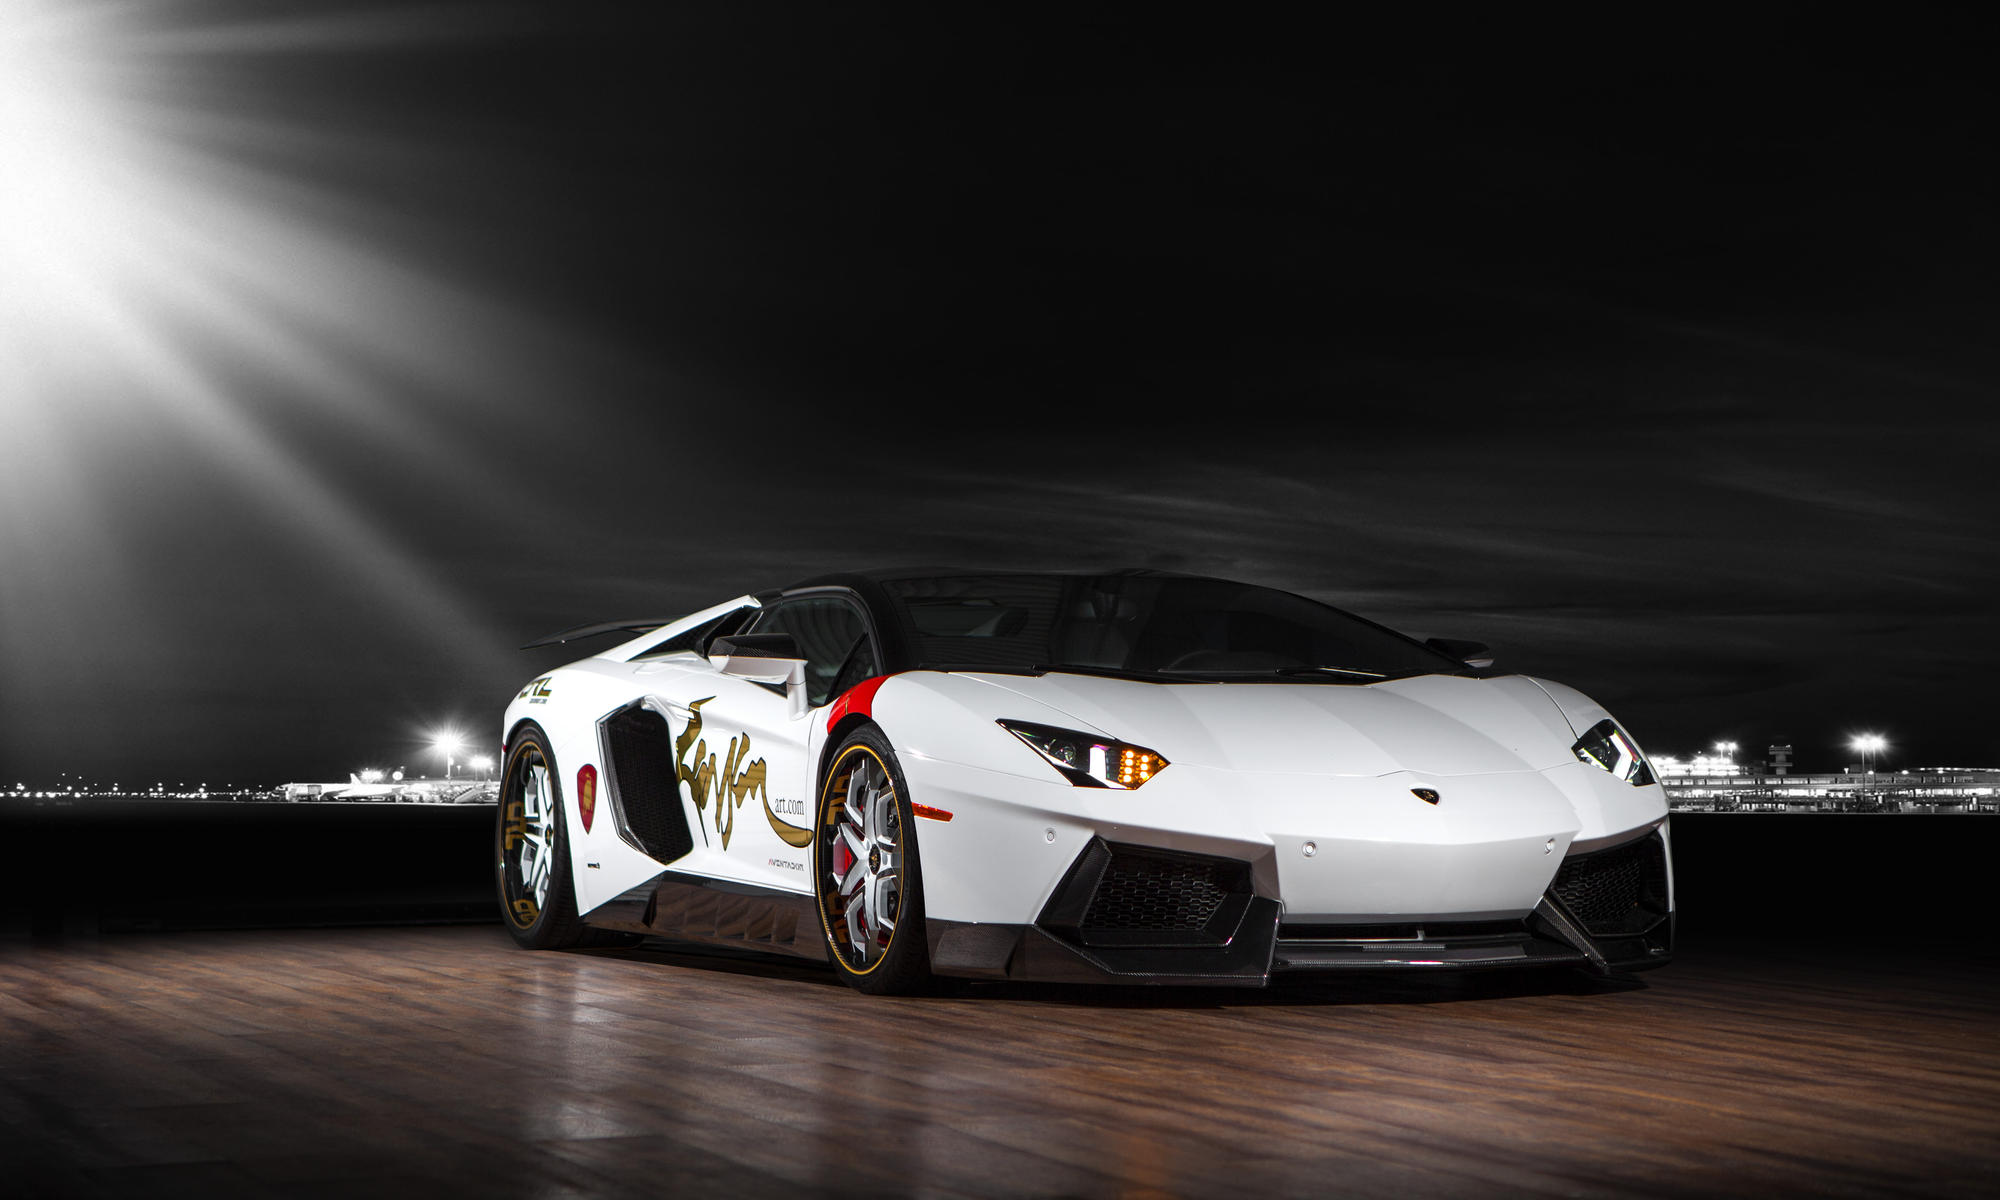 CUSTOM LF-110 ON THE LAMBORGHINI AVENTADOR.